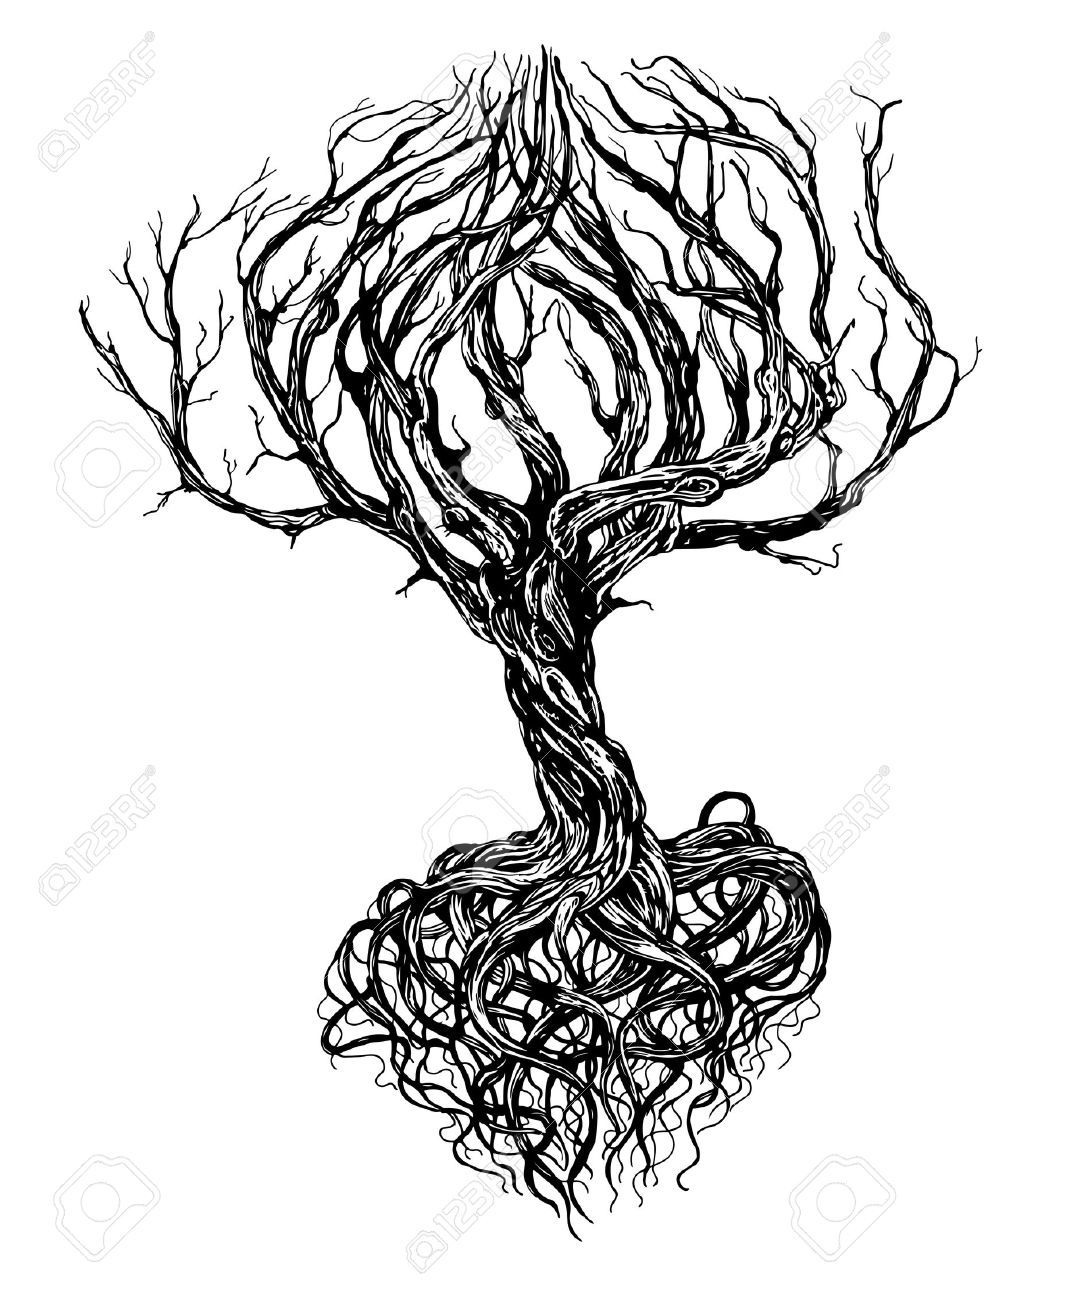 30565000-Hand-drawn-old-bare-tree-with-crooked-branches ...